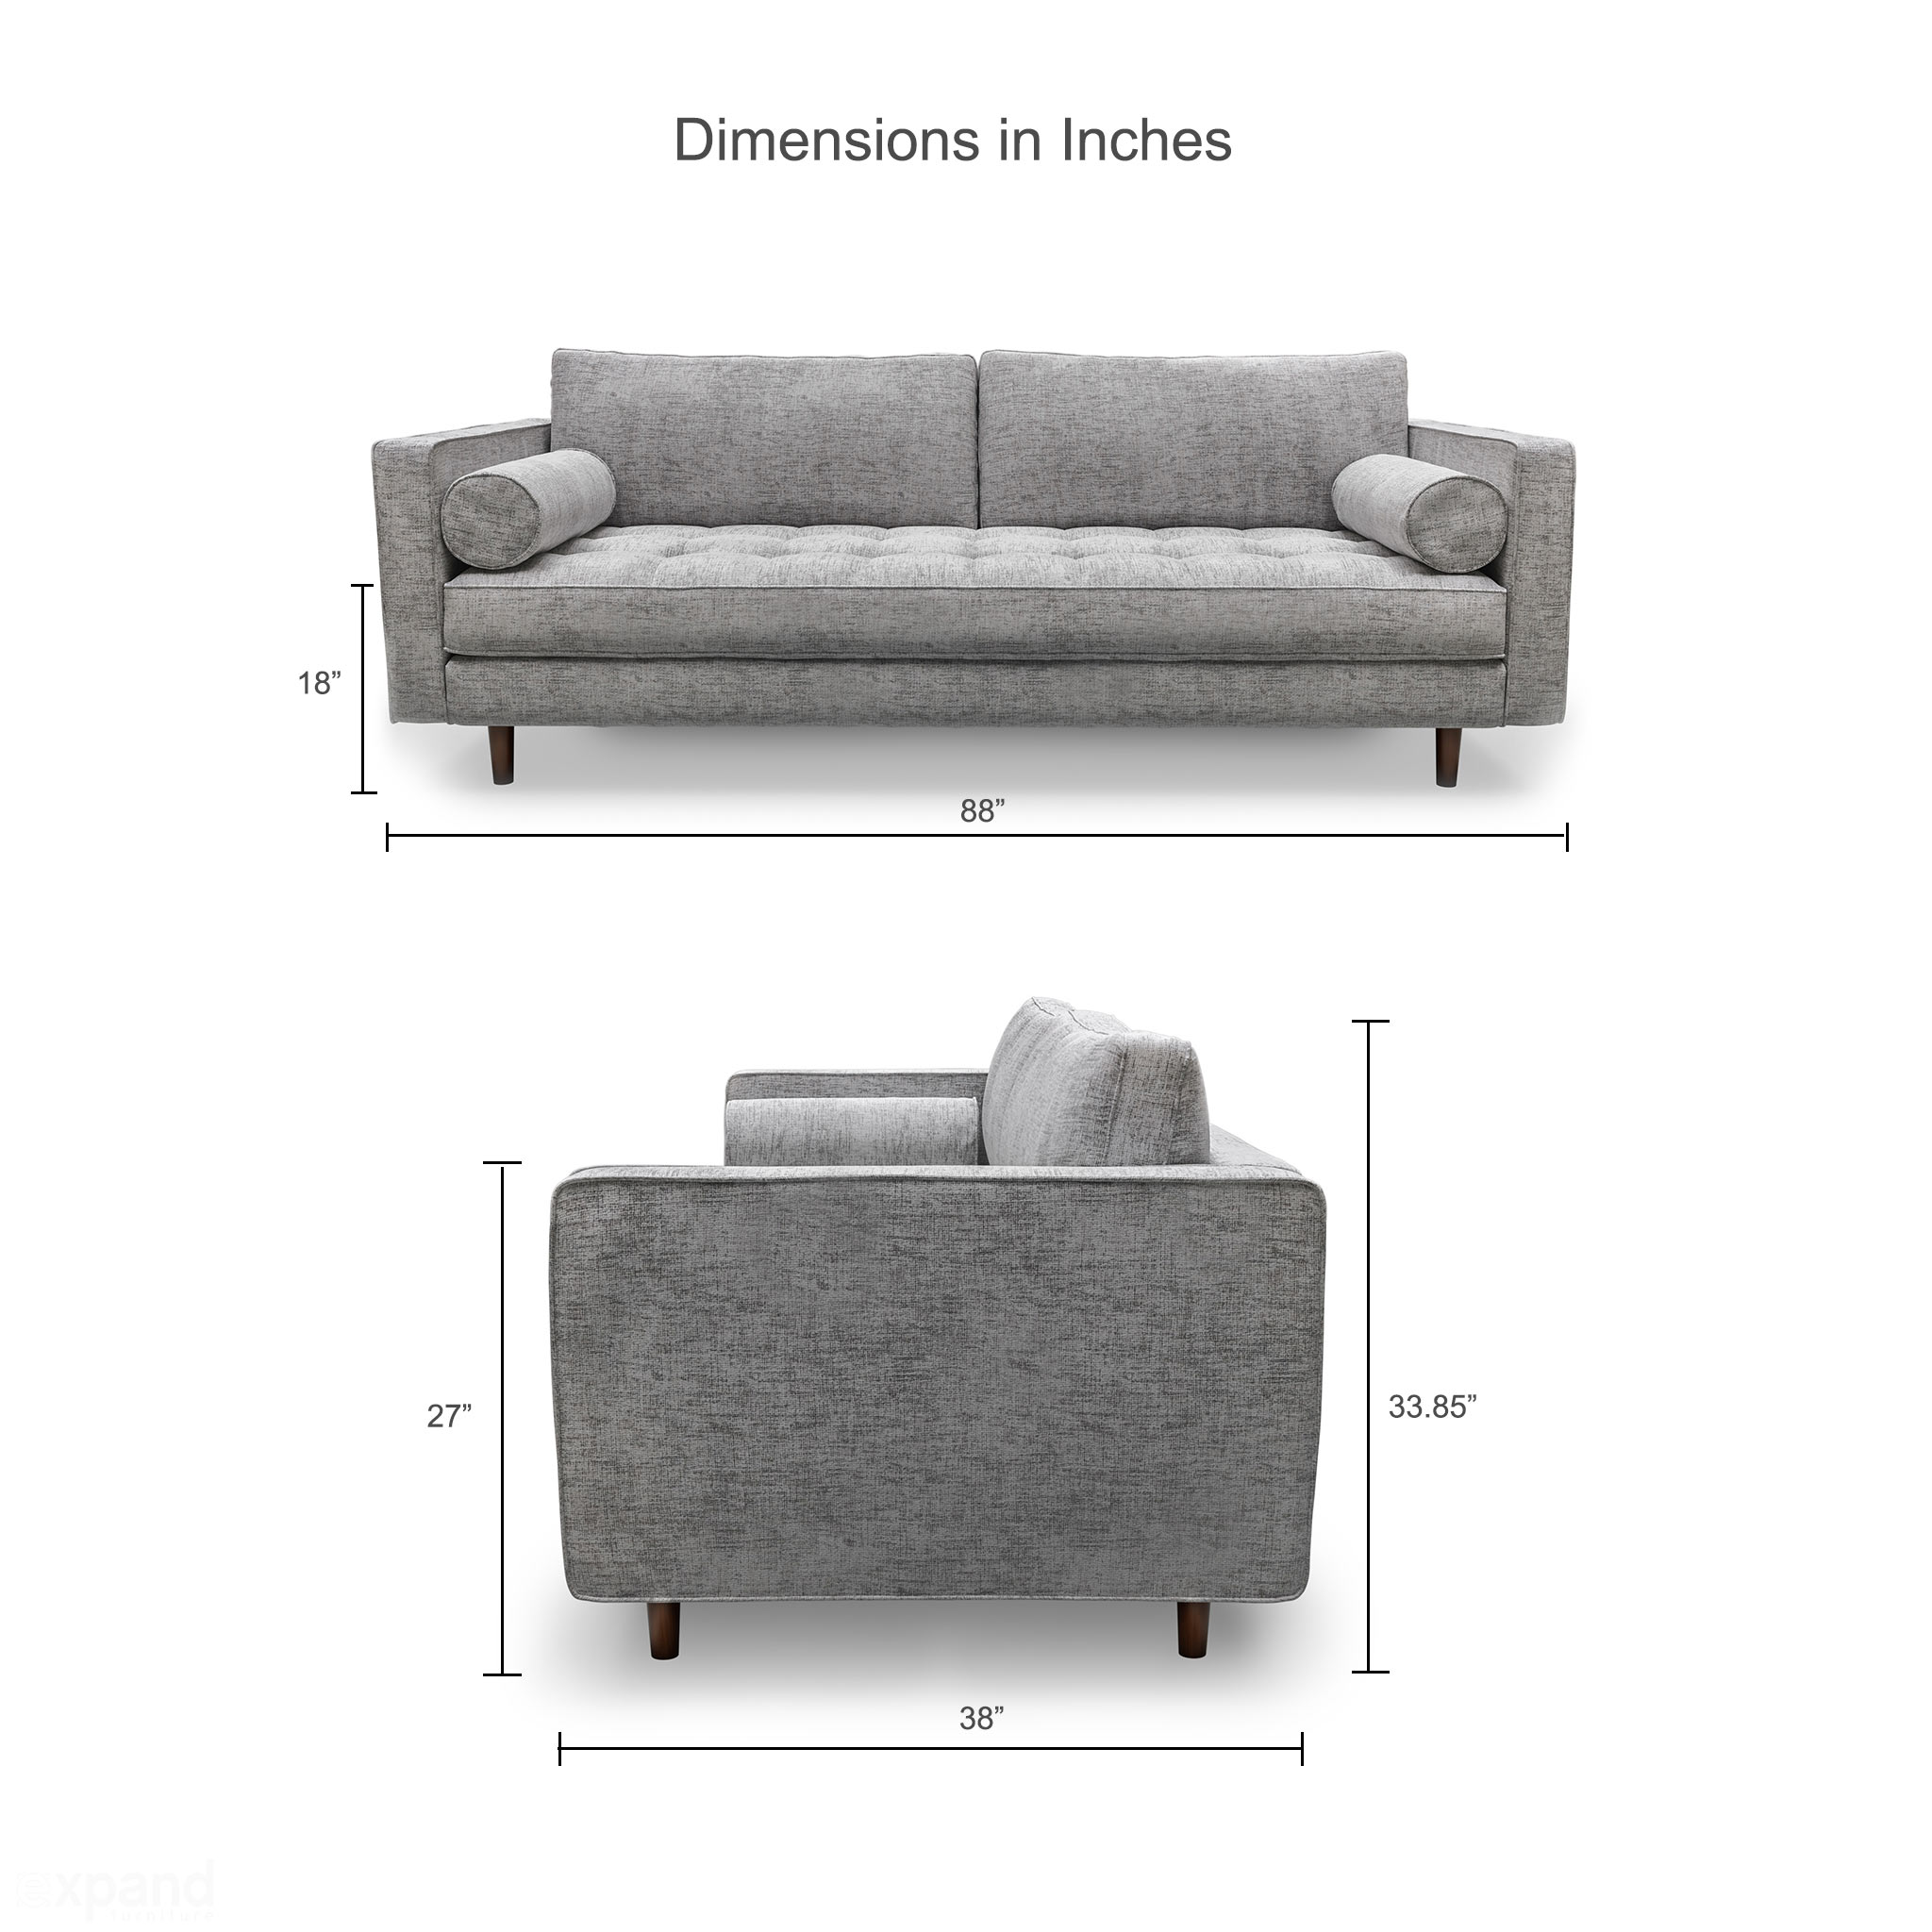 Scandormi Modern Sofa: Grey mid-century tufted couch | Expand ...